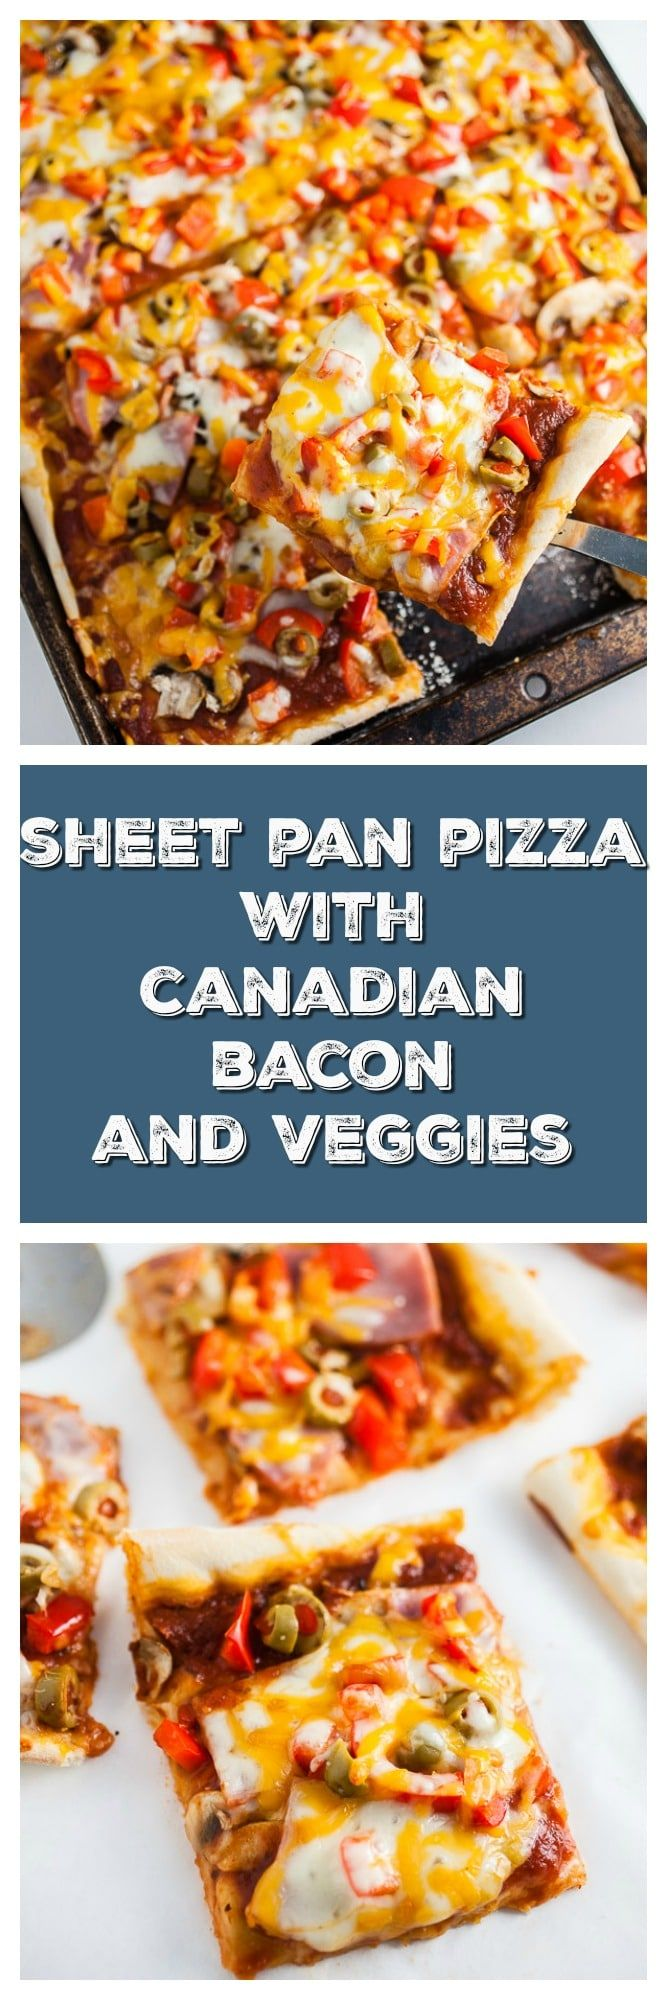 120 best Pizzas and Flatbreads images on Pinterest | Pizza dip ...